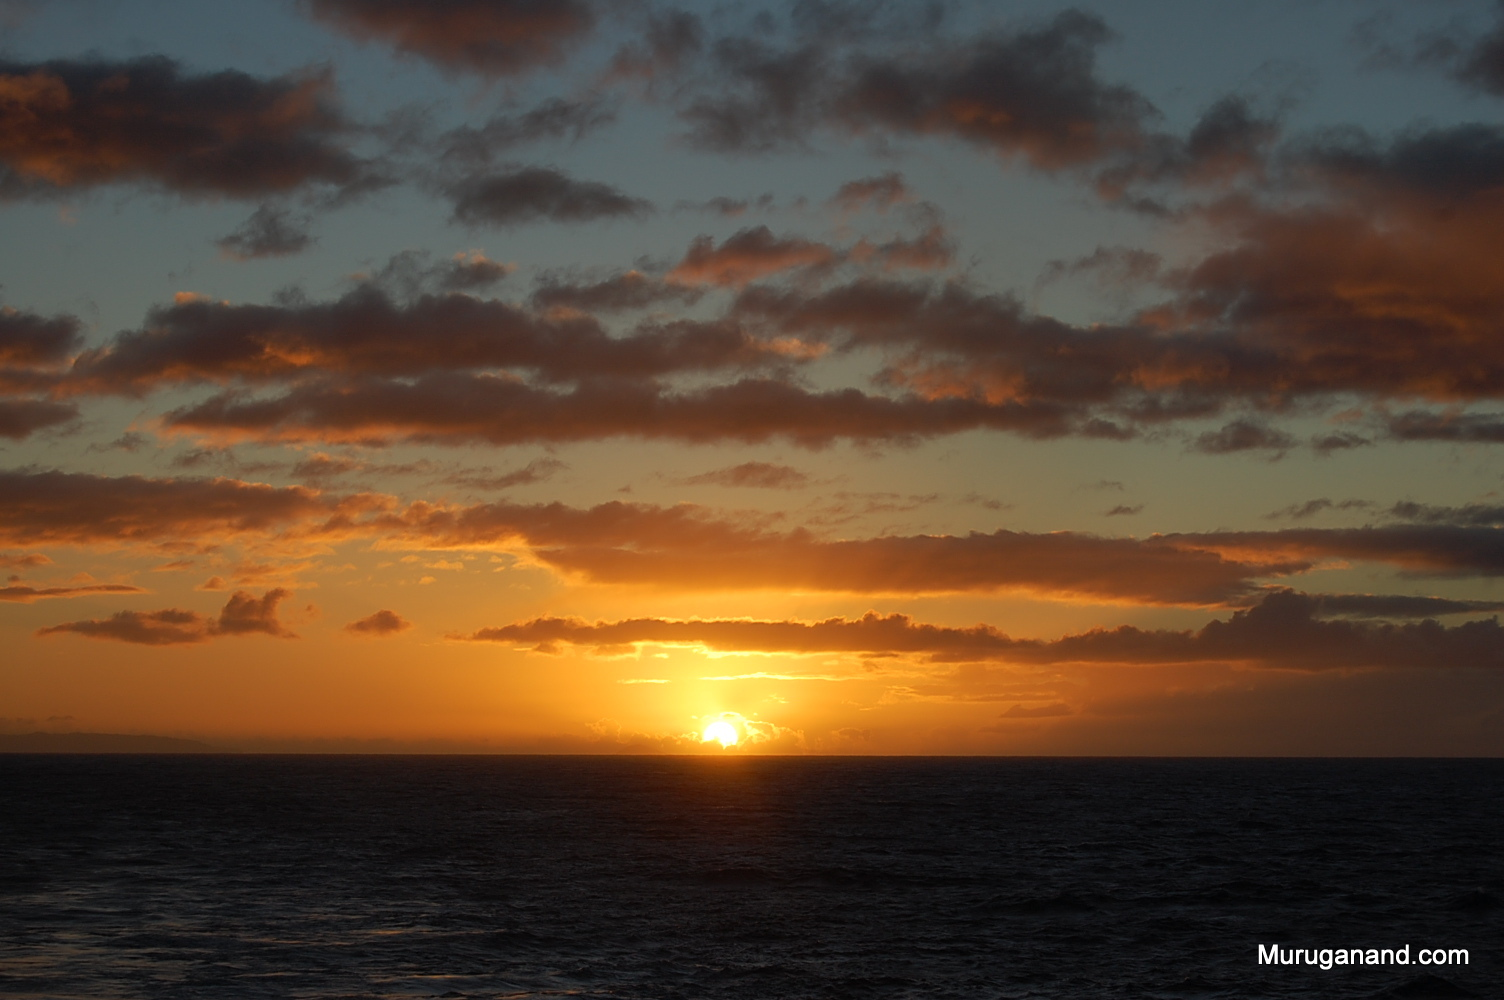 Sunset after departing from Kauai